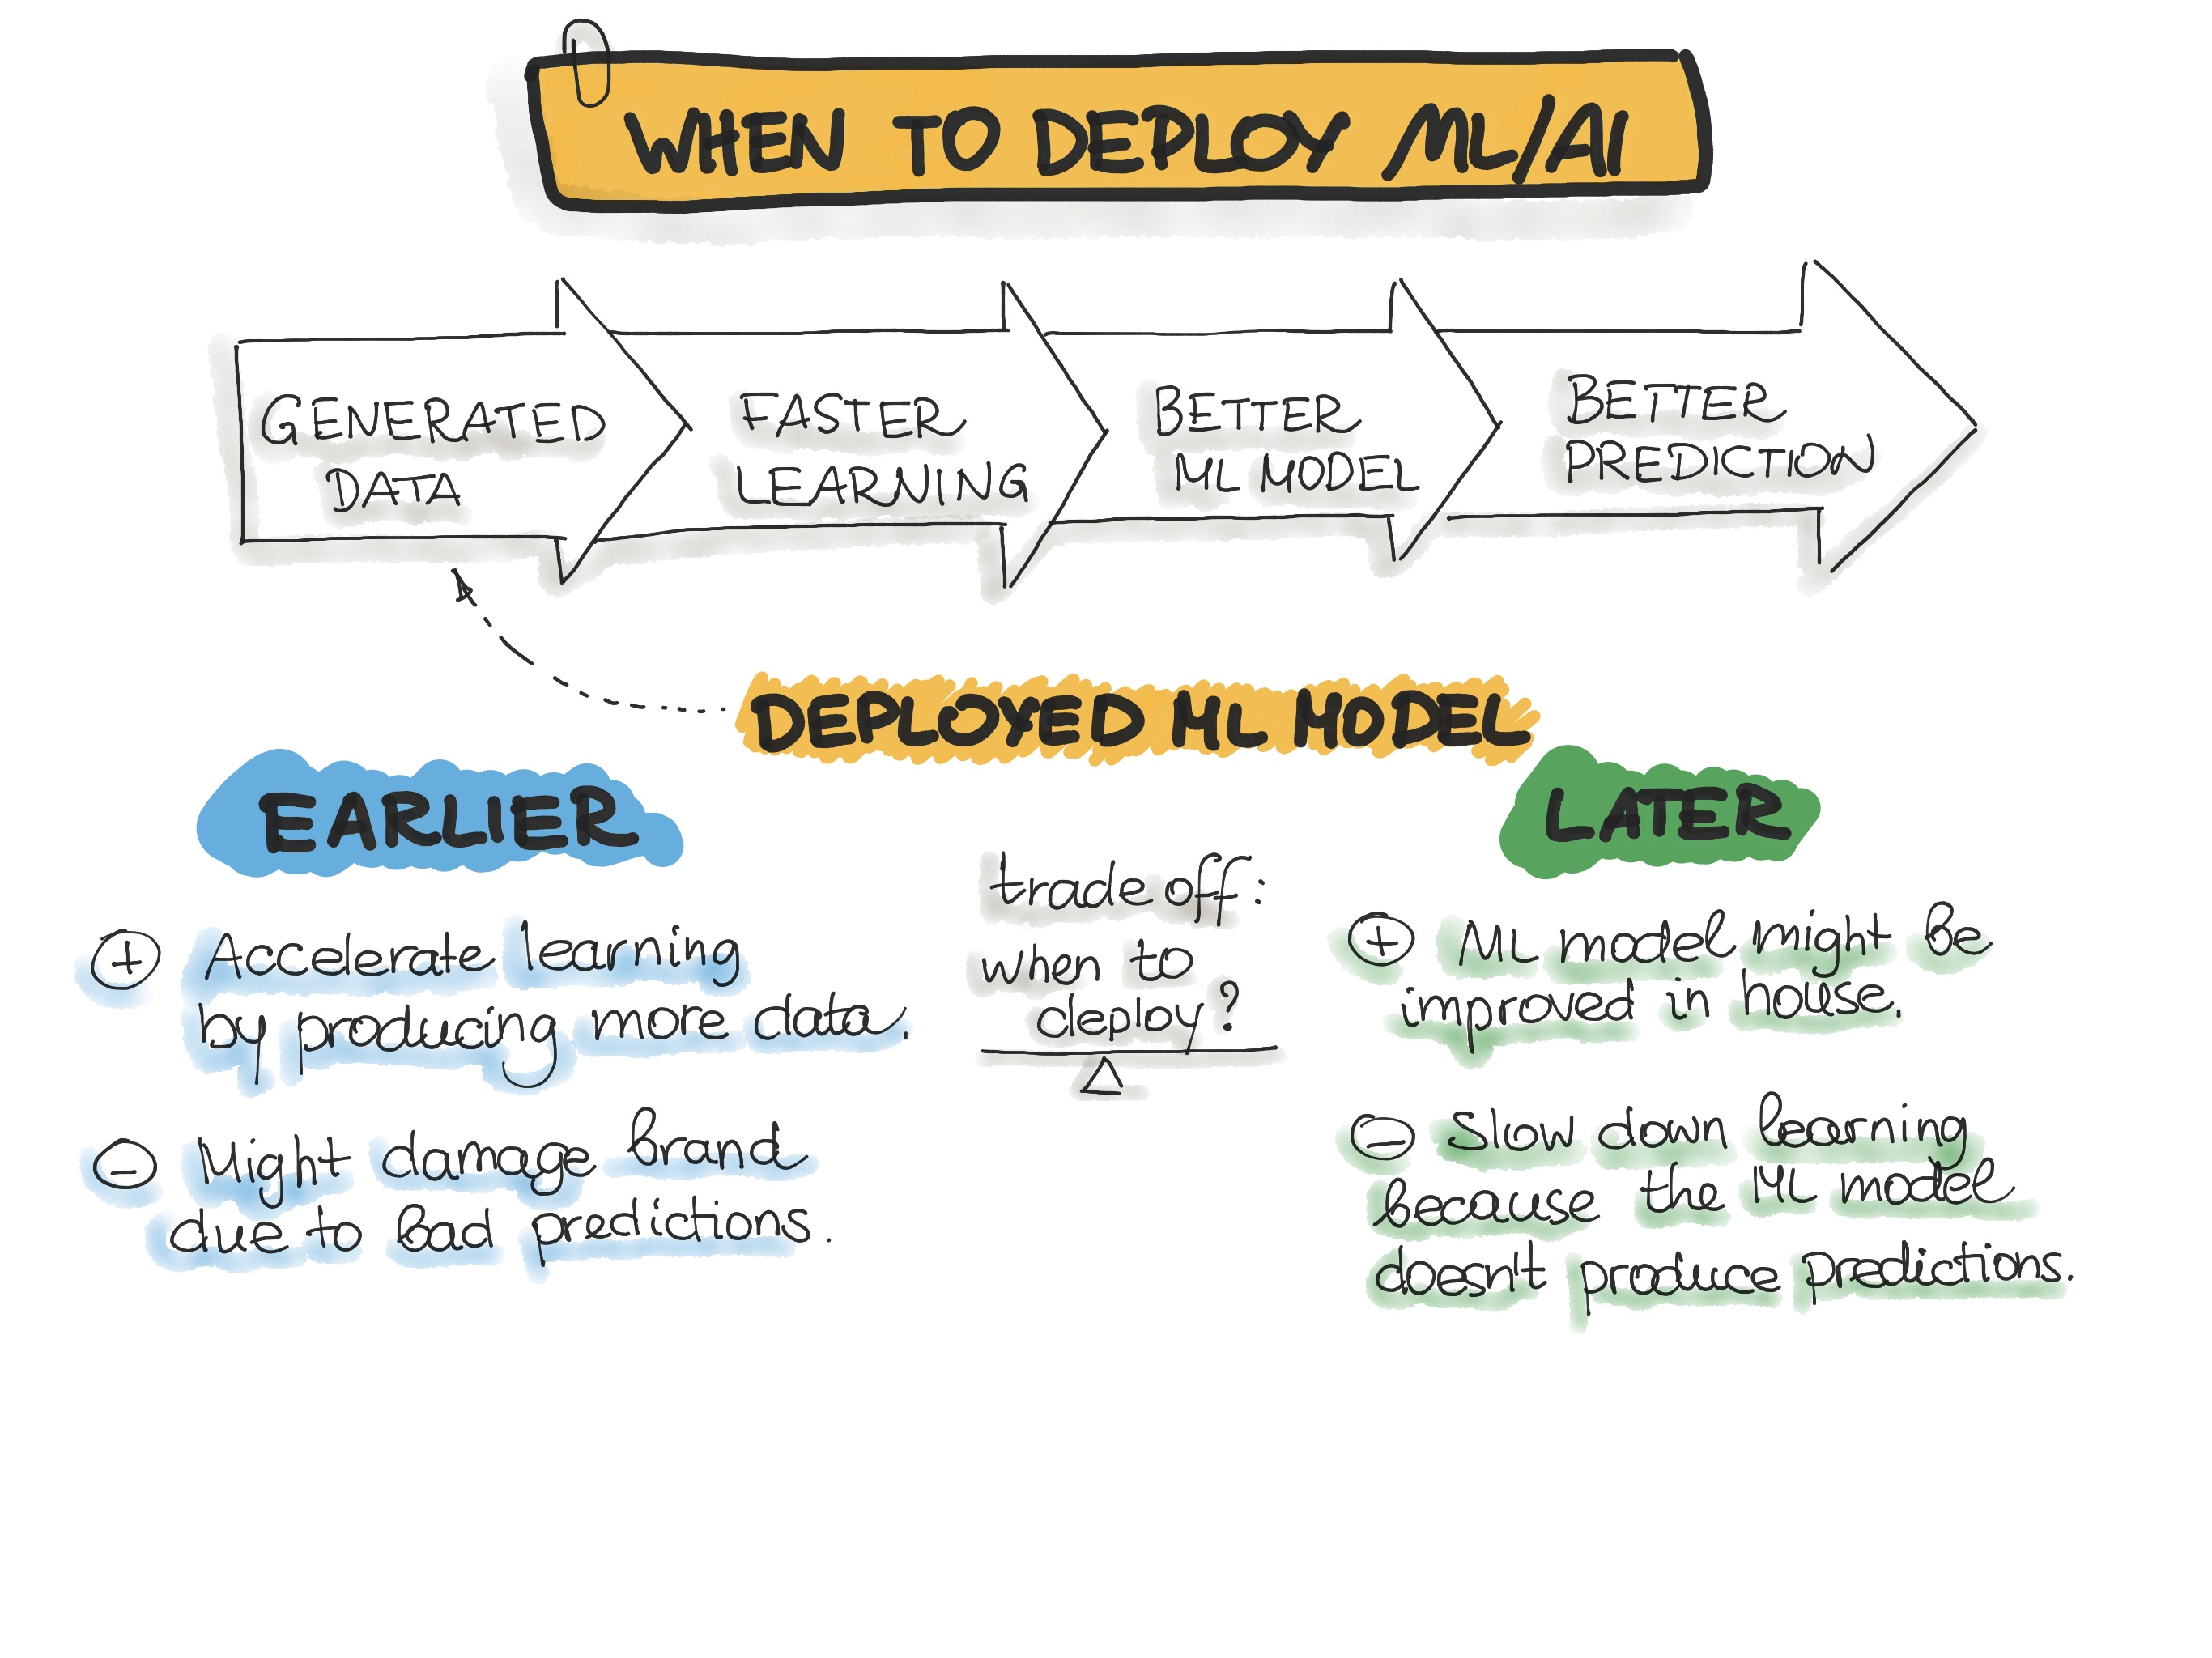 When to Deploy AI?